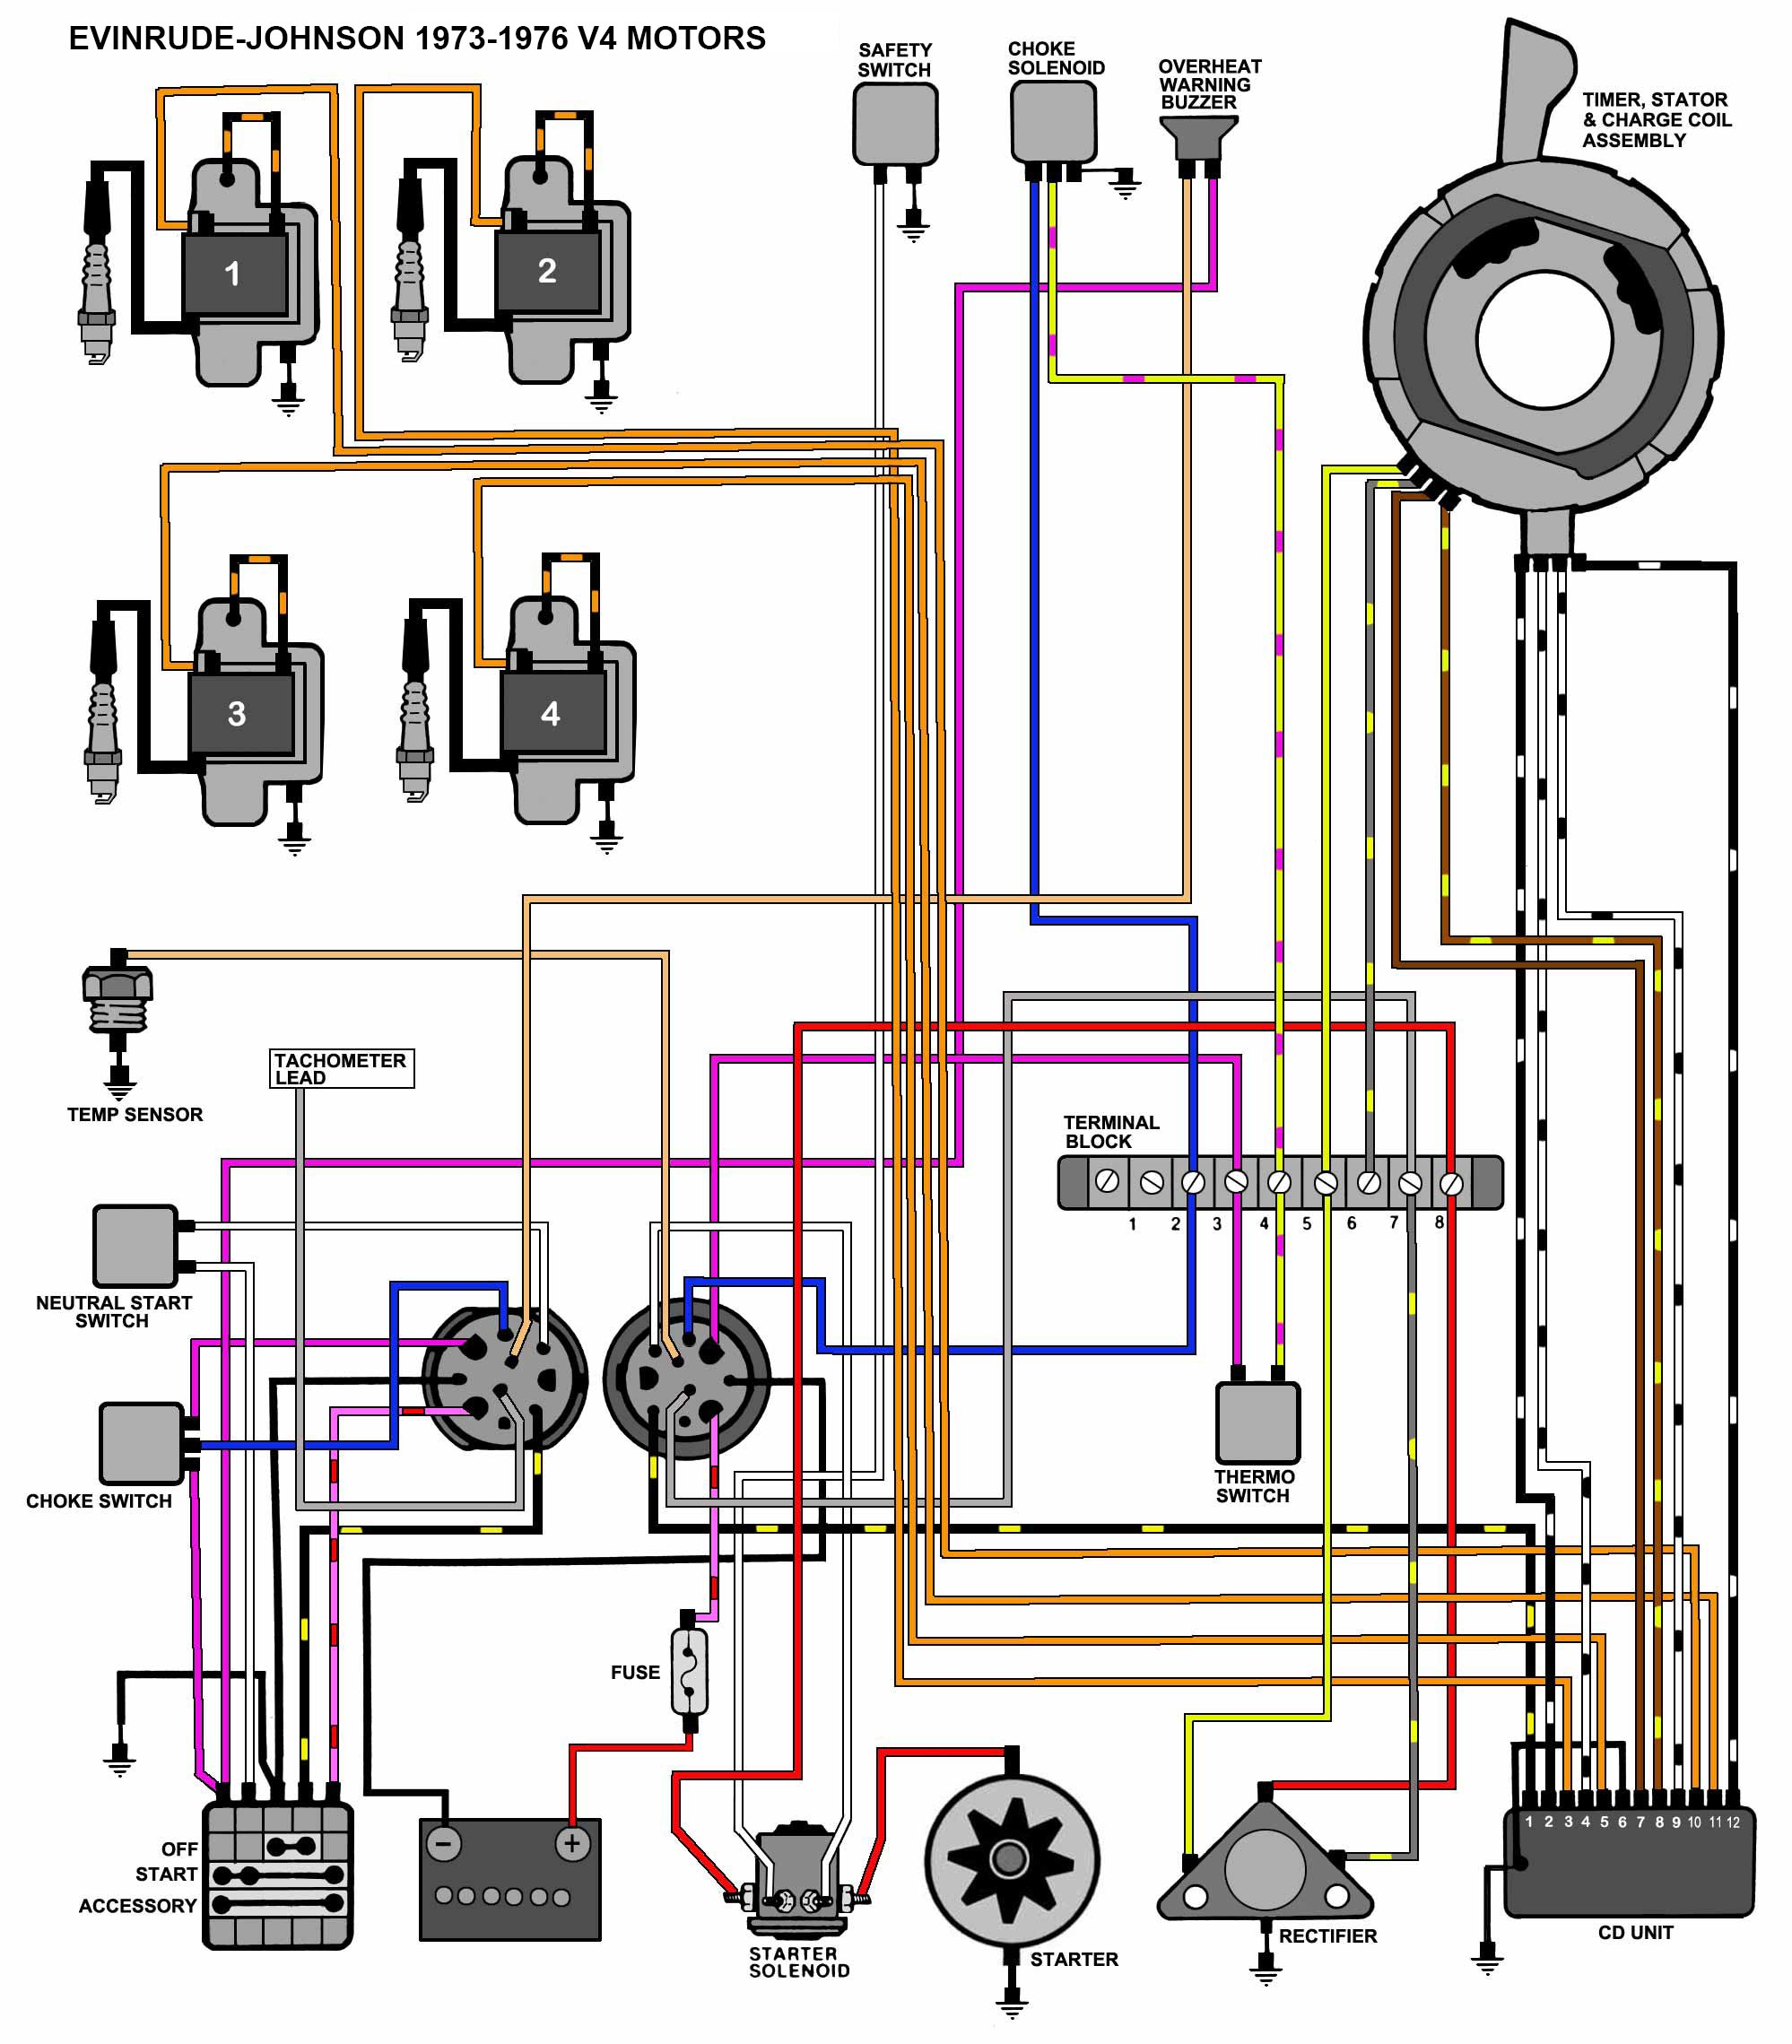 hight resolution of omc ignition wiring diagram wiring diagram nameevinrude ignition wiring diagram wiring diagram mega omc cobra ignition